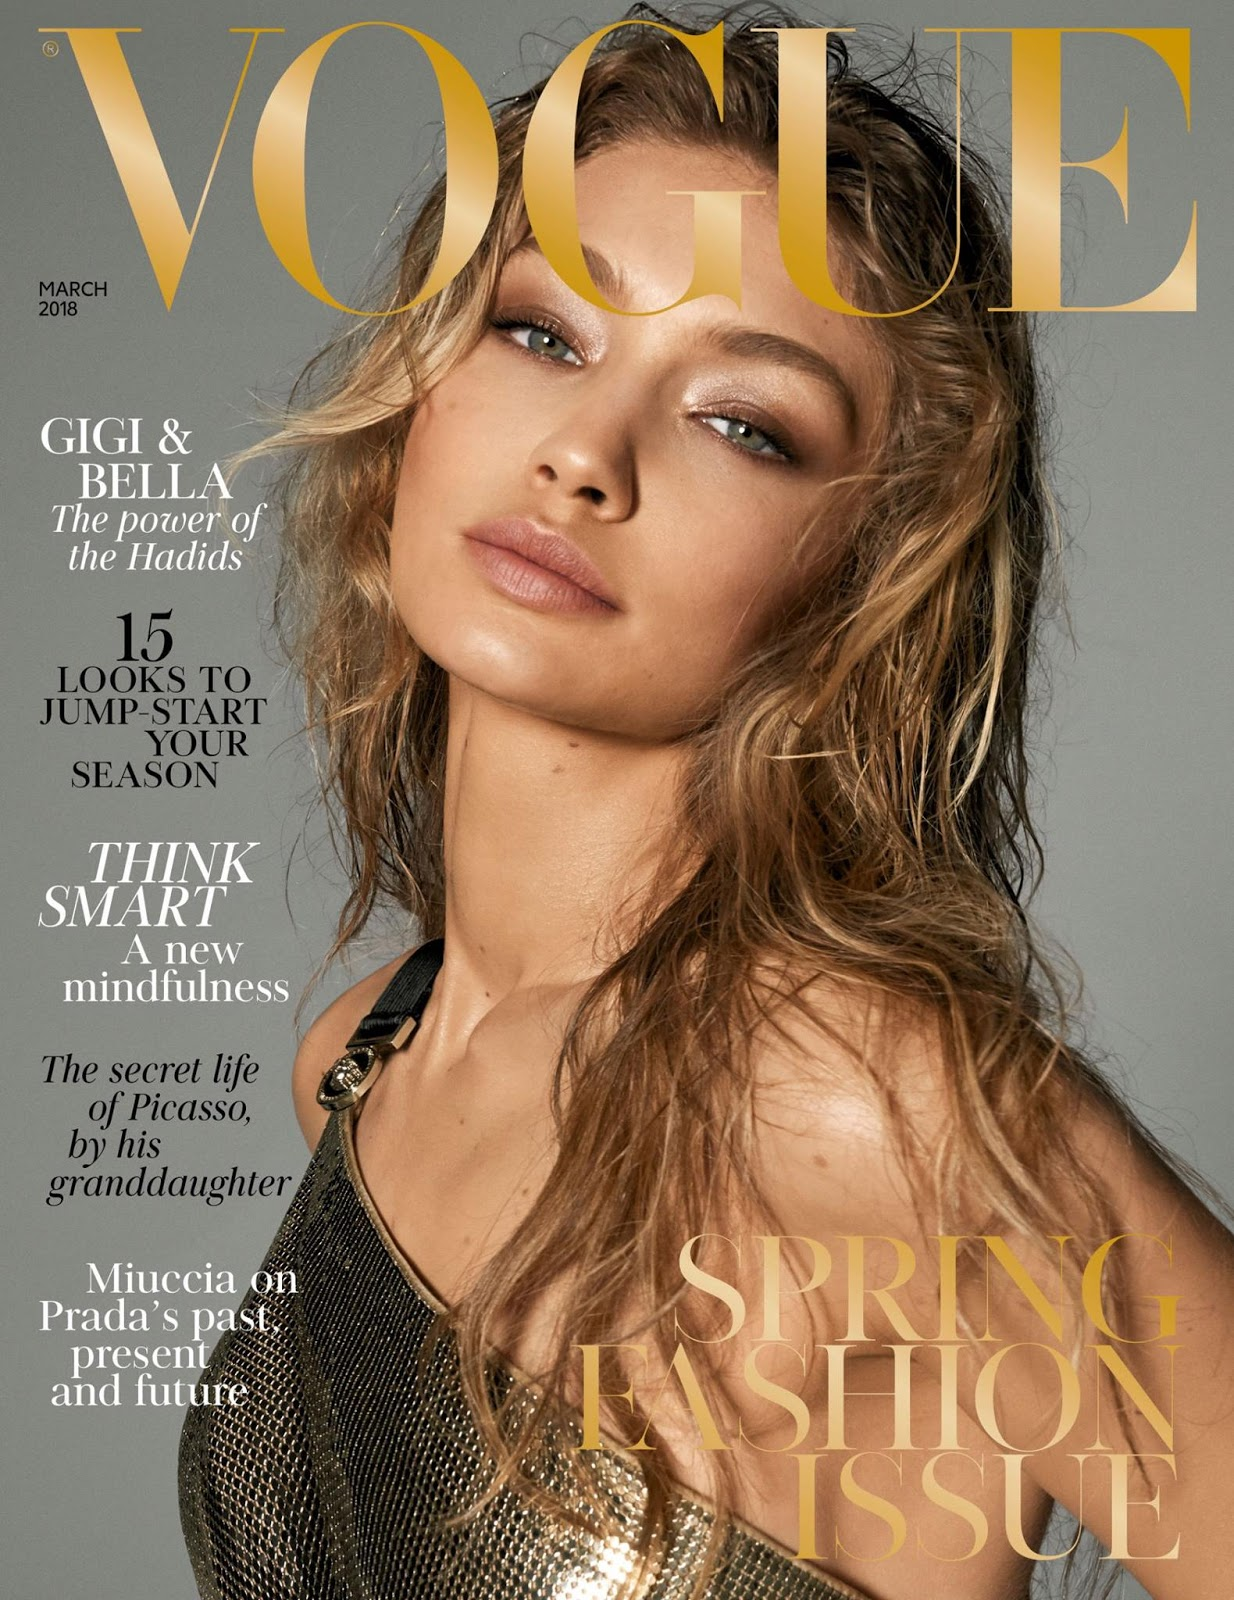 Gigi Hadid, Bella Hadid for Vogue UK March 2018 Covers